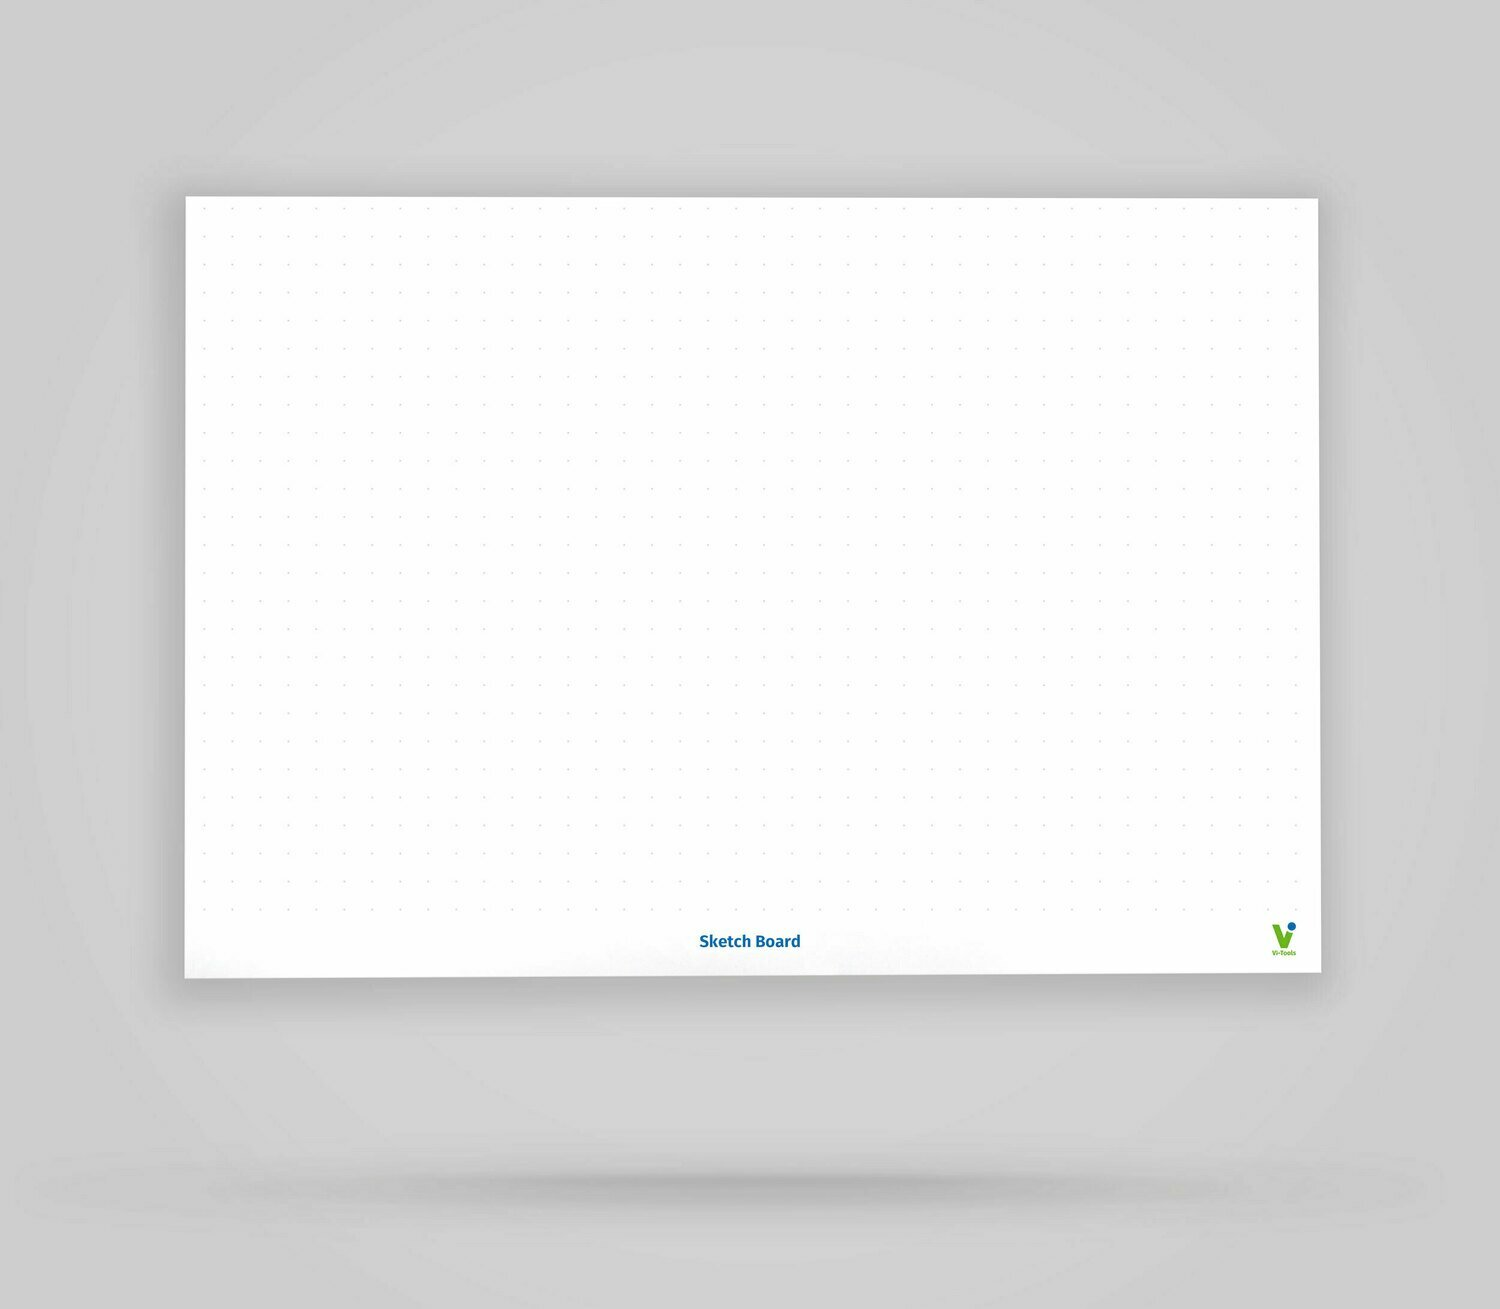 Sketch Board - Whiteboard Poster